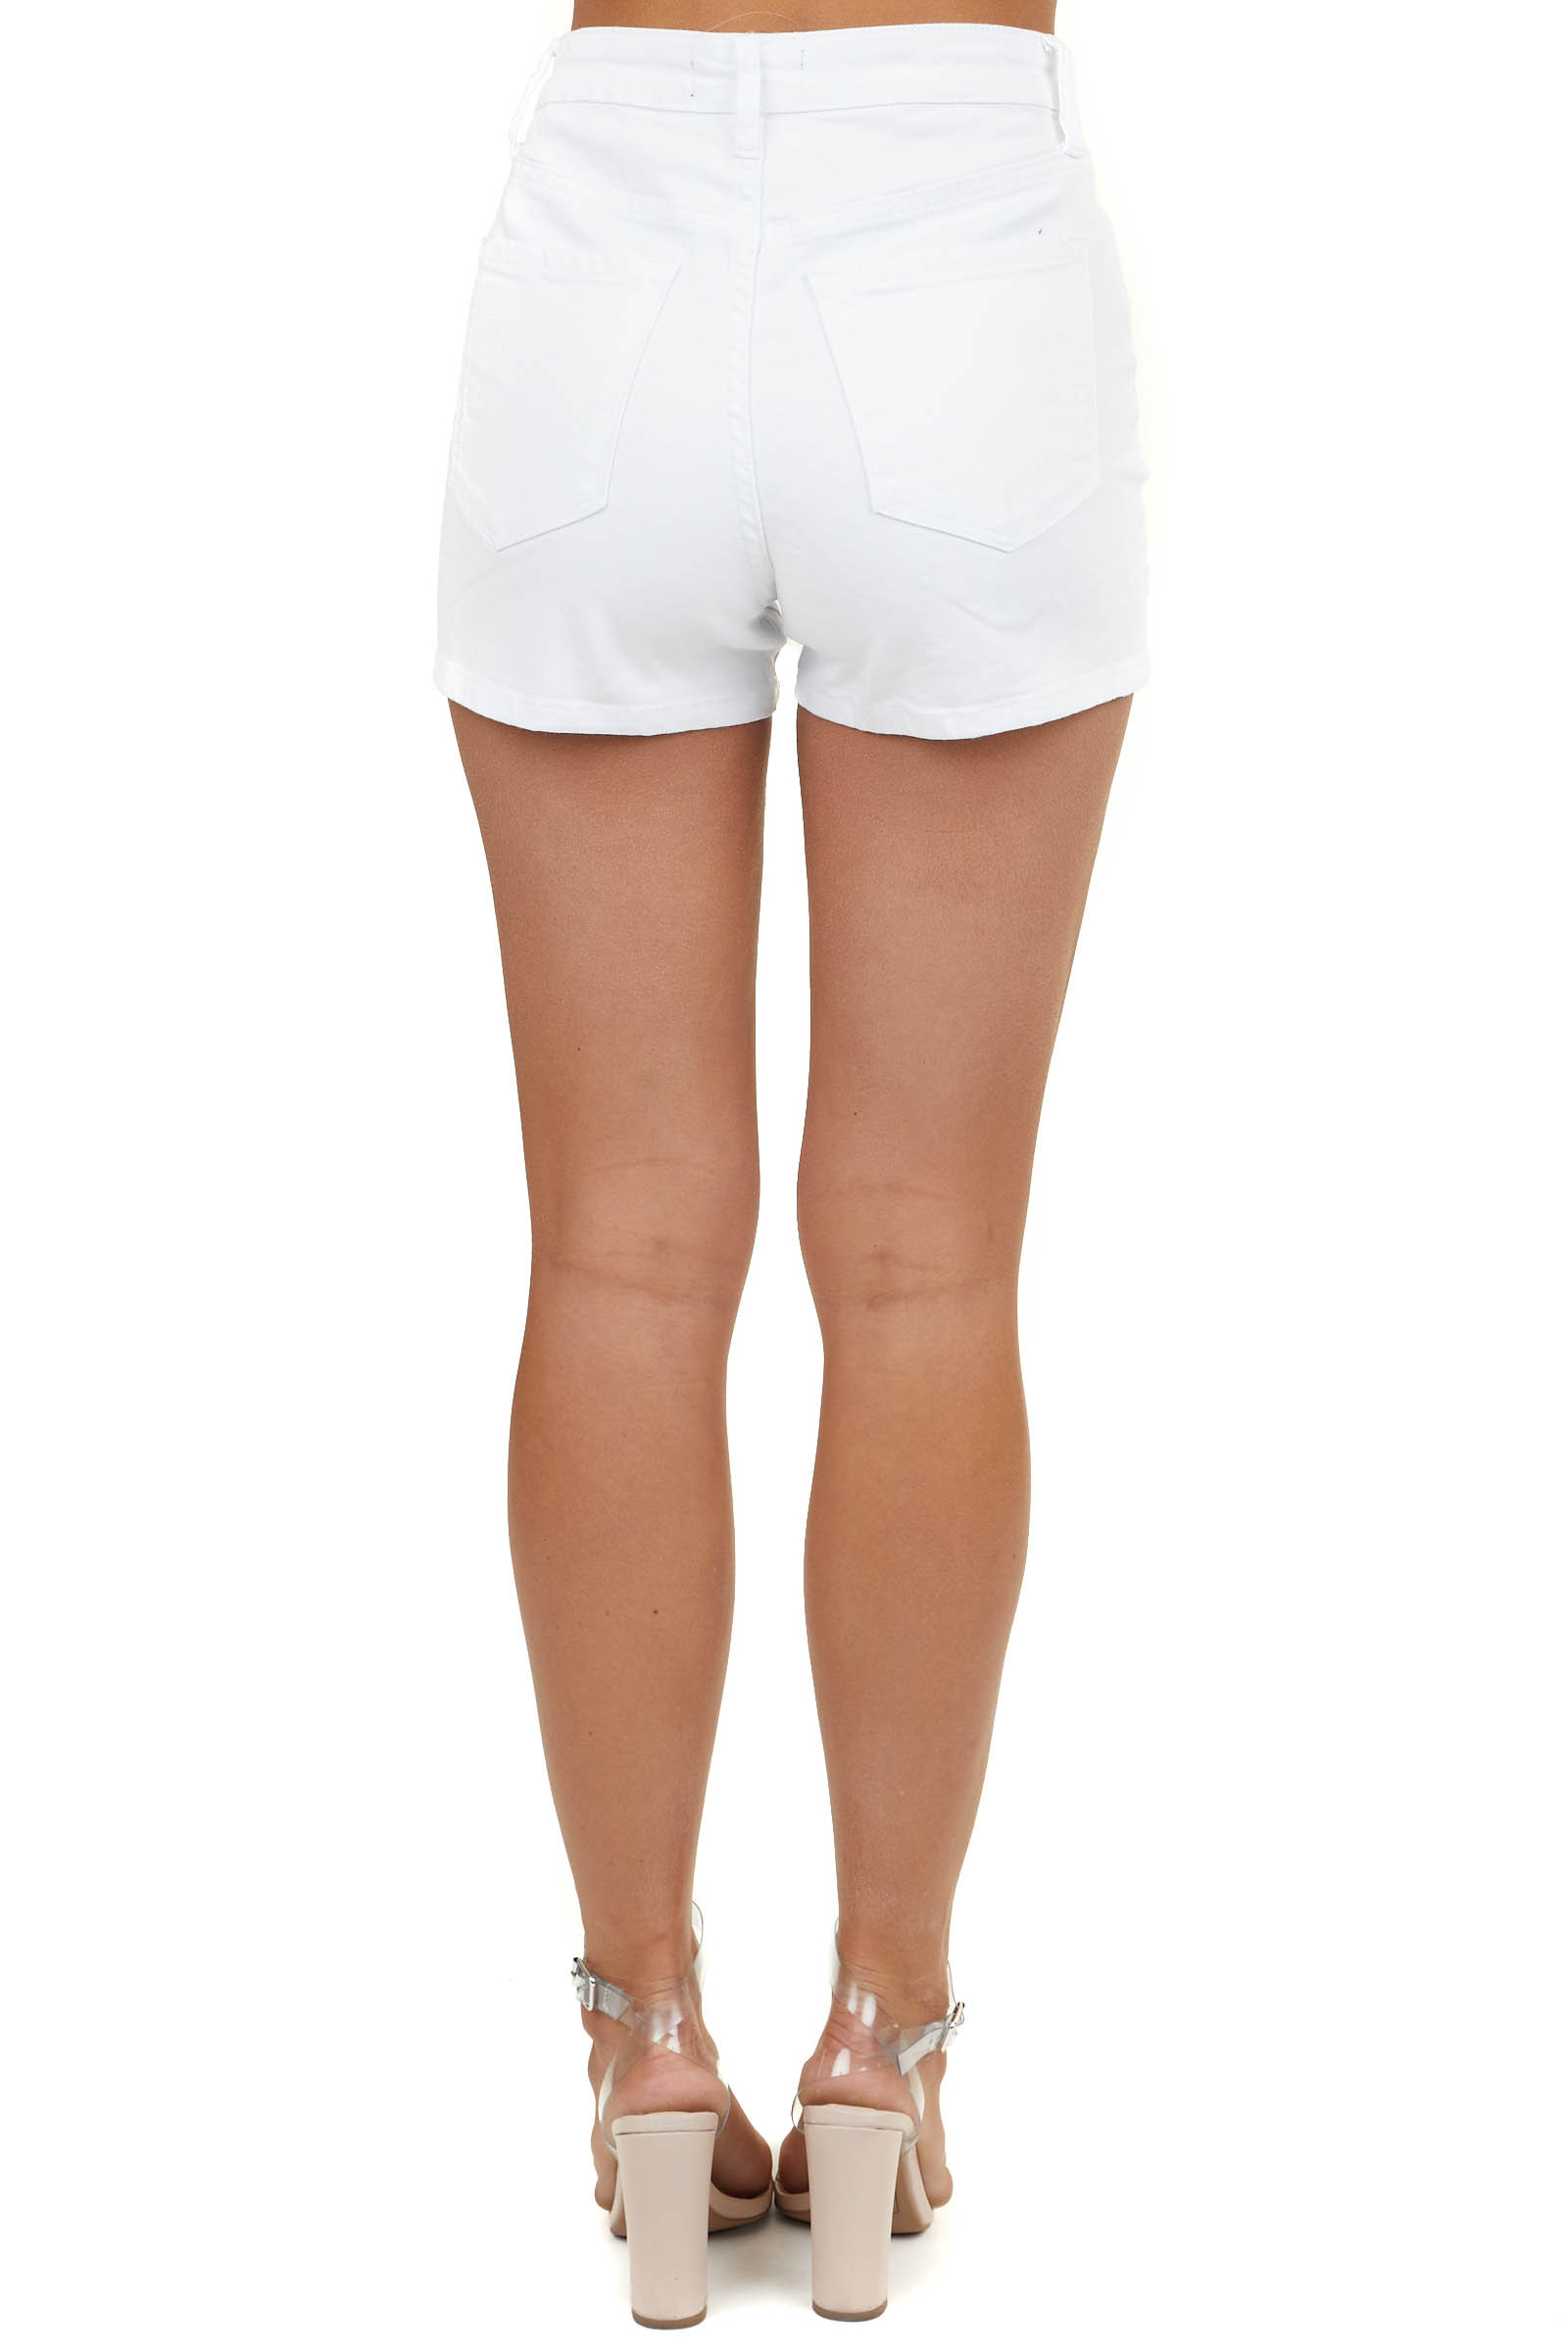 White Denim High Rise Shorts with Button Up Front